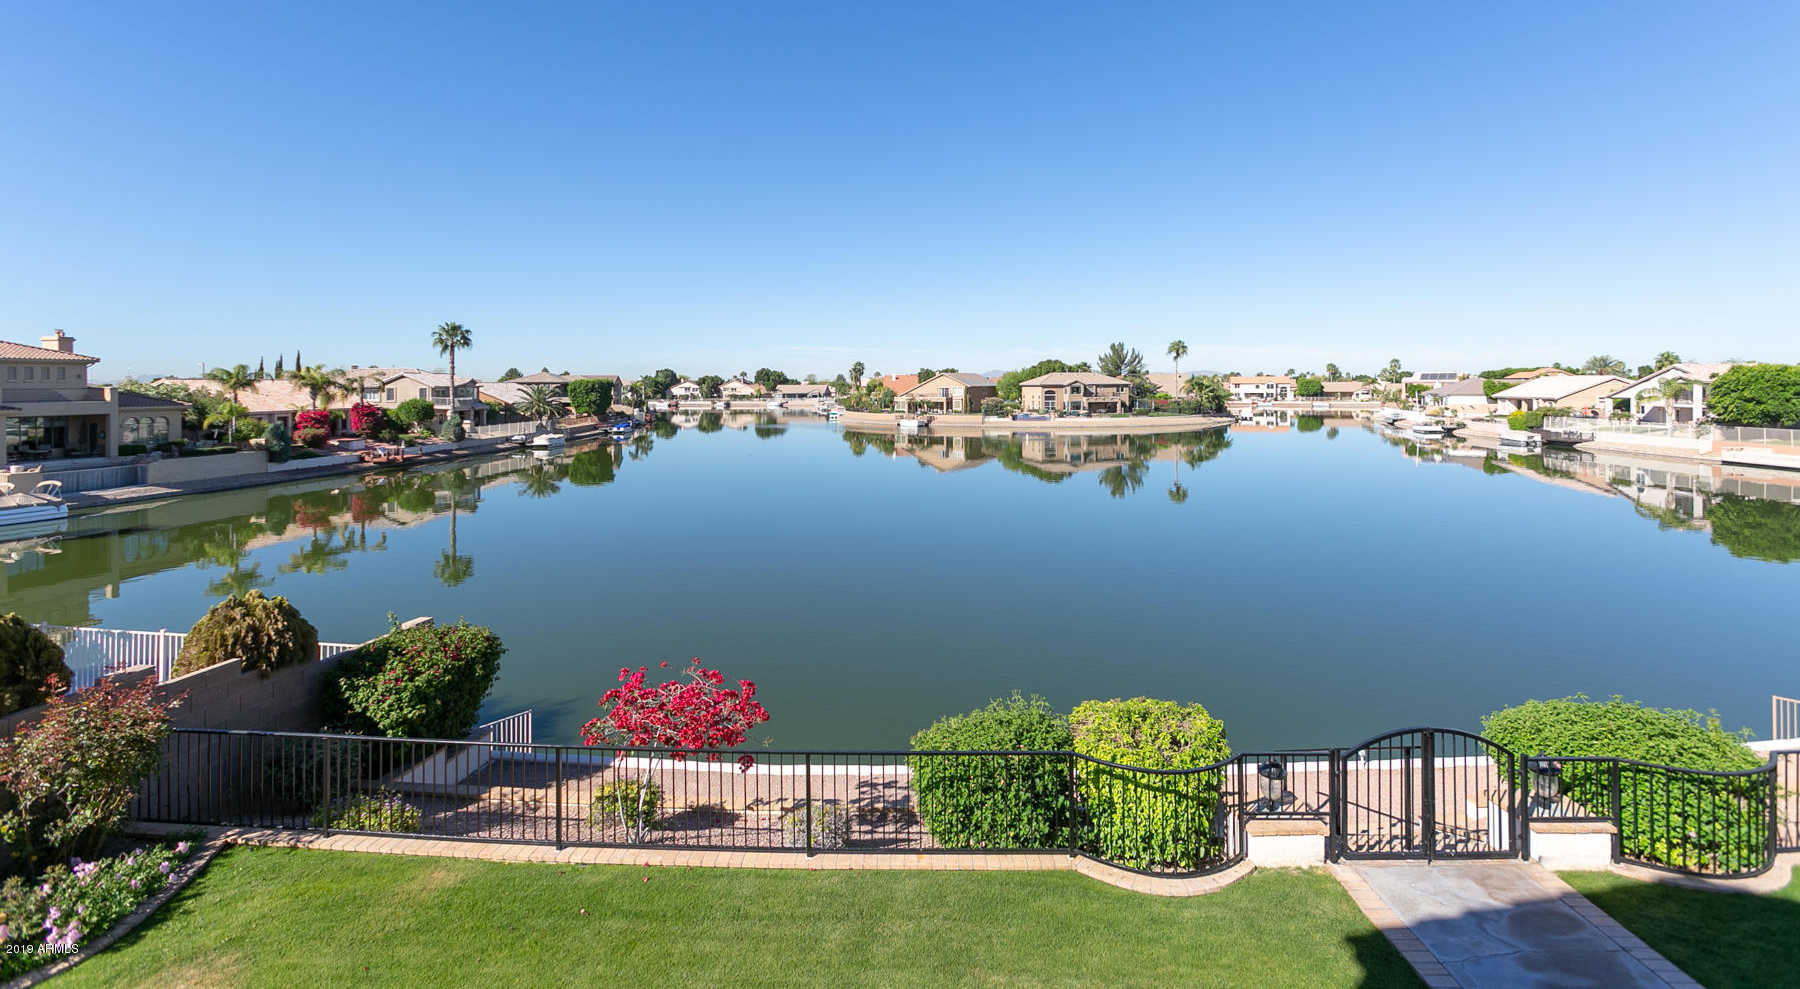 $699,000 - 4Br/3Ba - Home for Sale in Arrowhead Lakes, Glendale